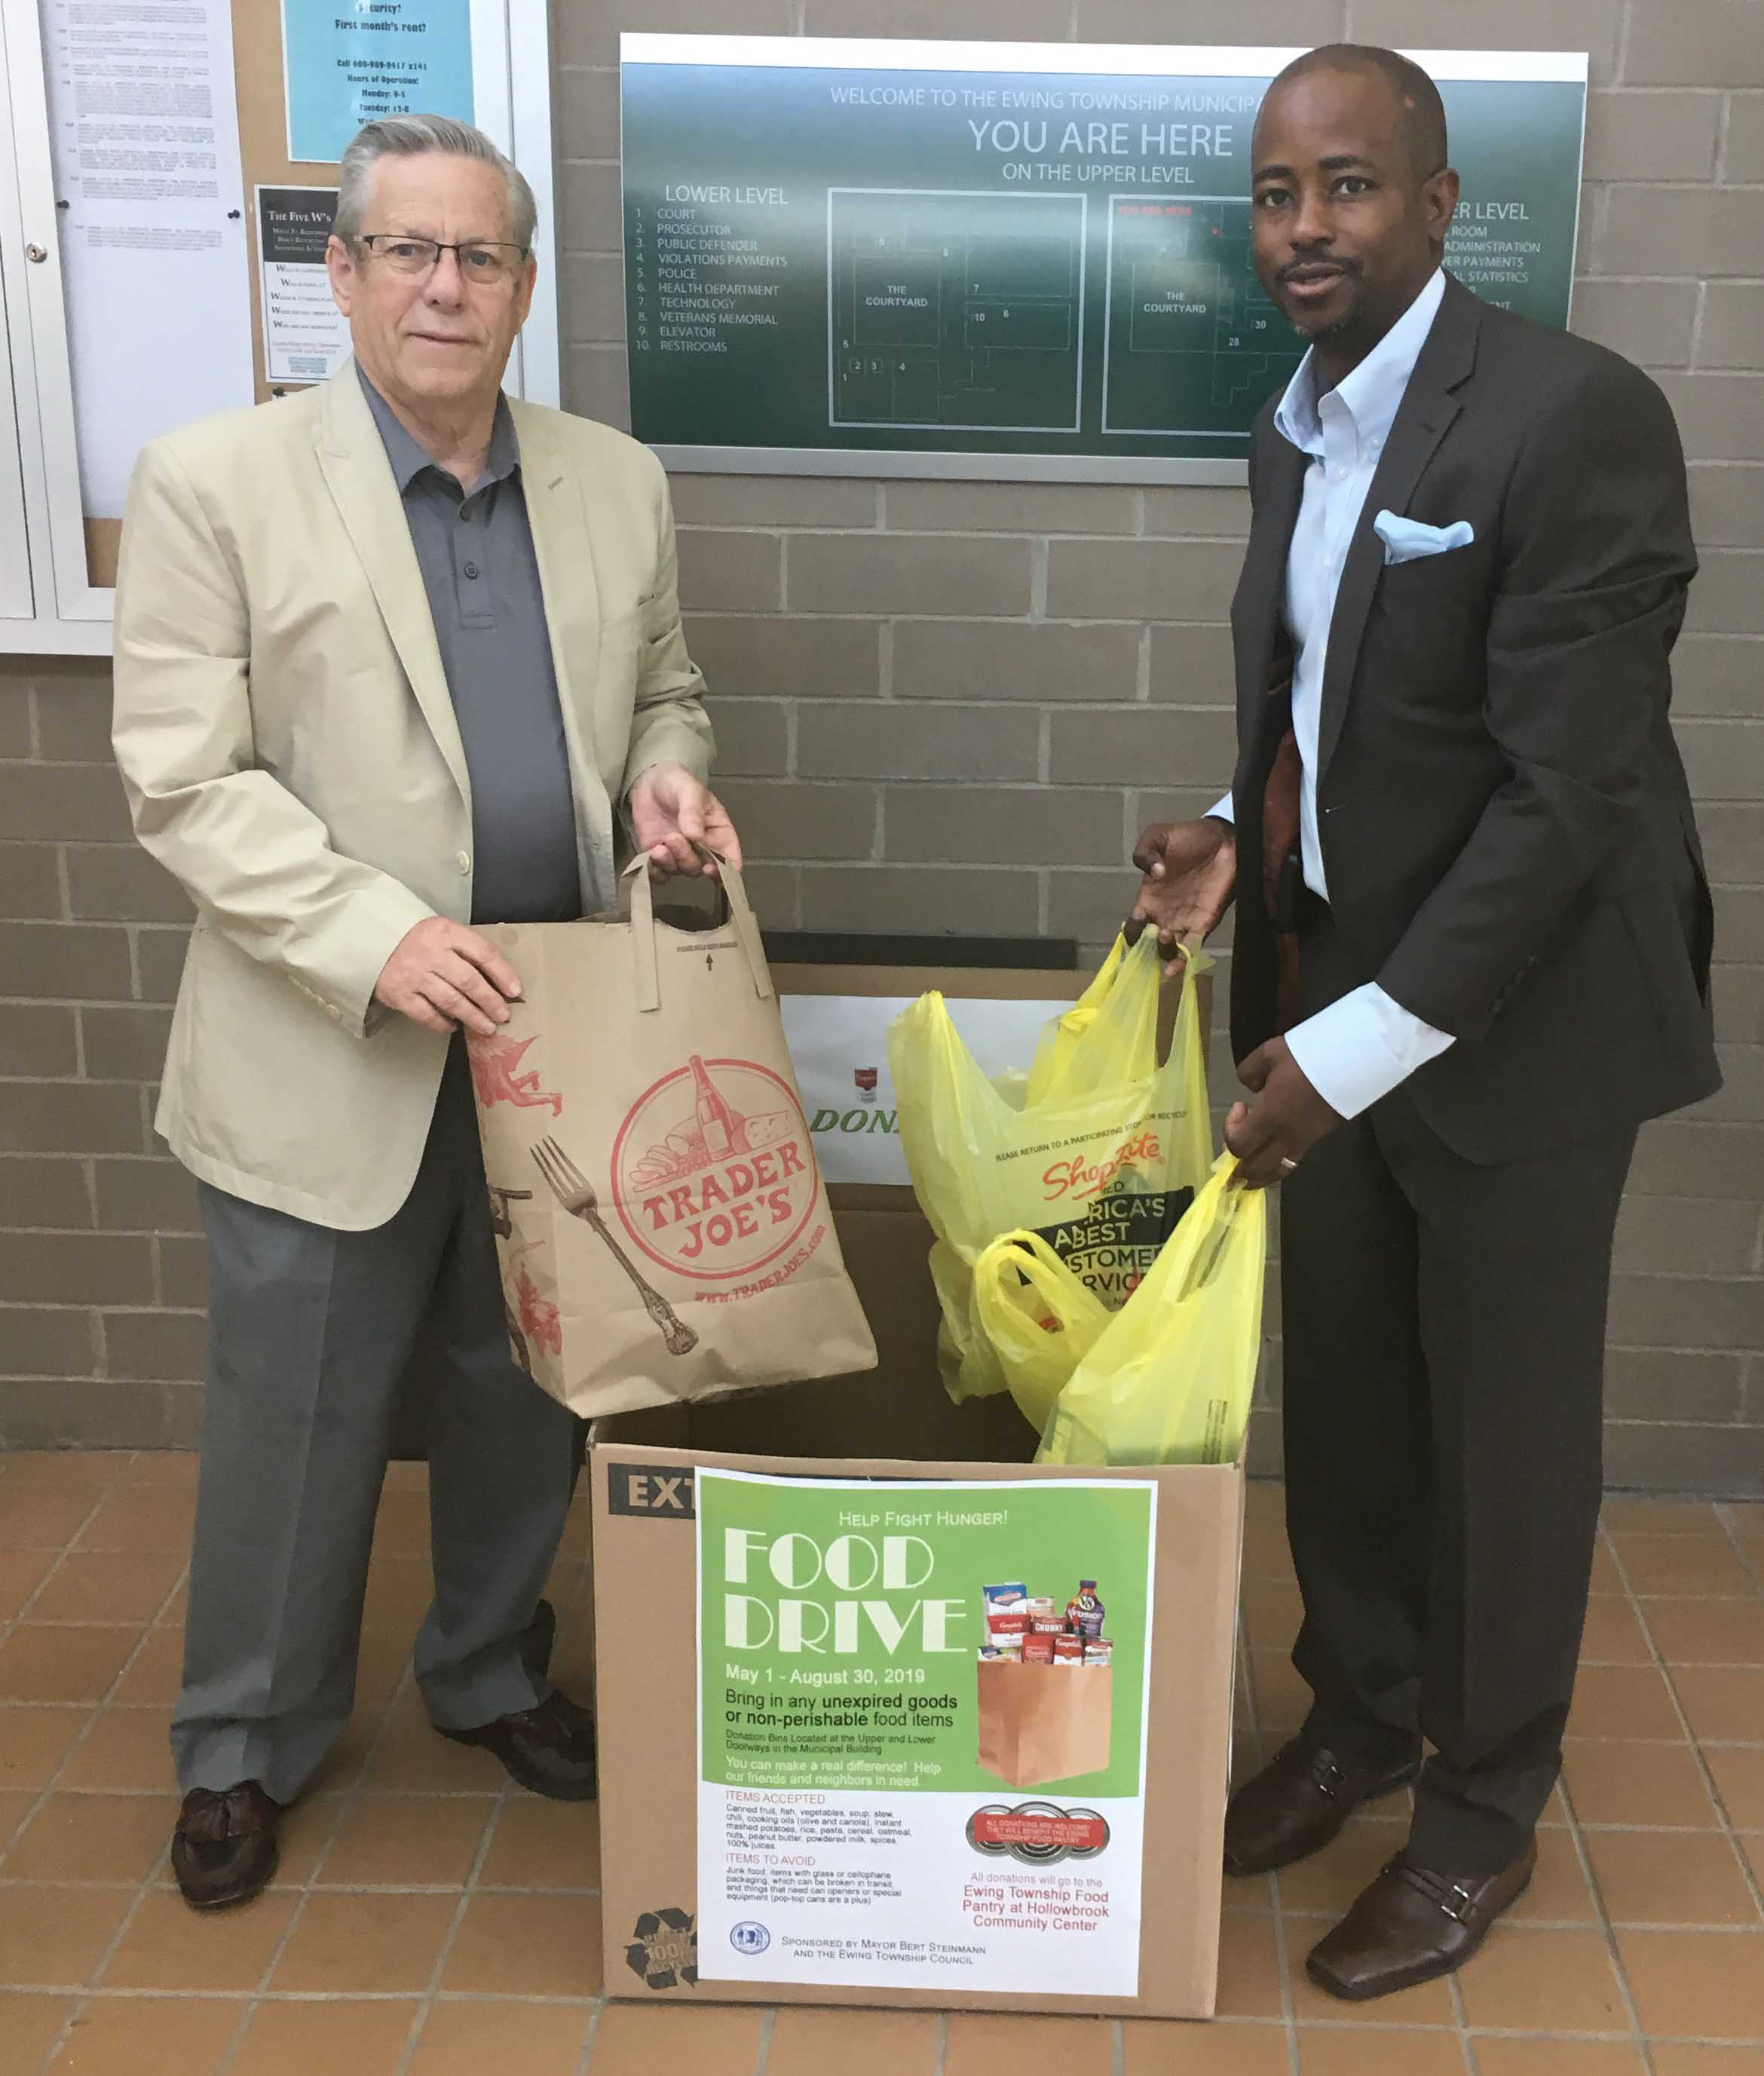 Food Drive drop off box in front lobby with Mayor Steinmann and Council President Baxter